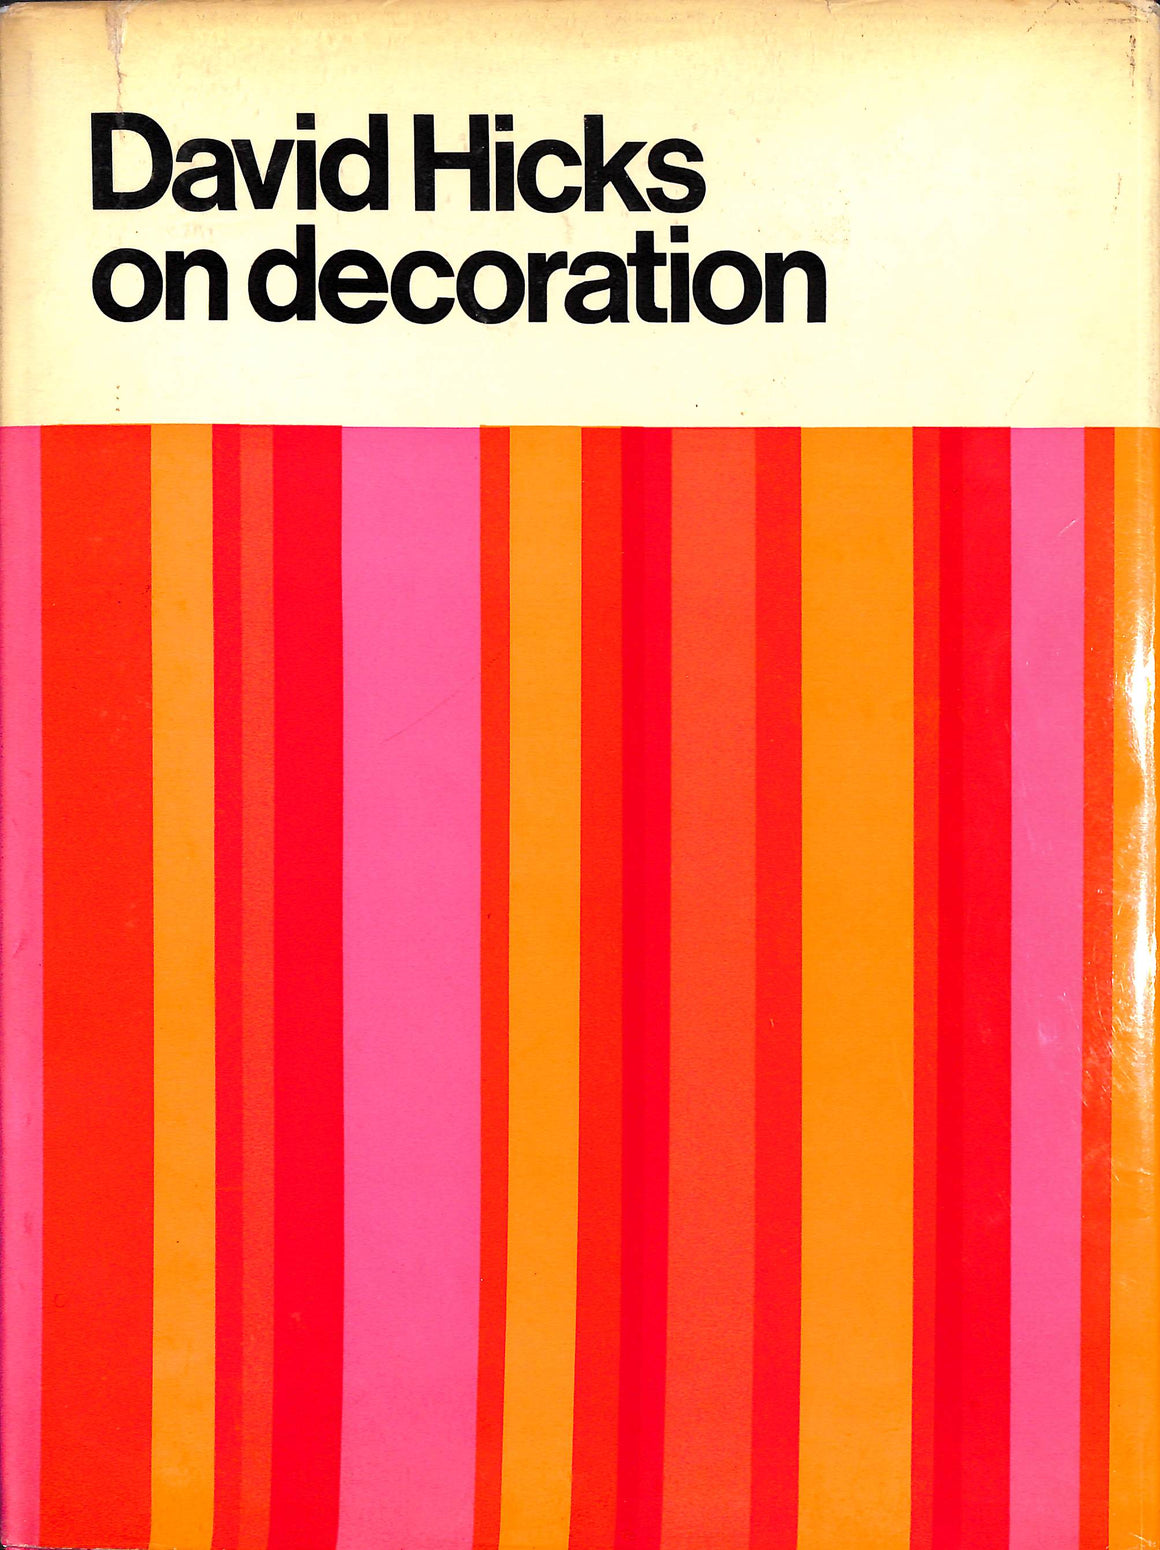 David Hicks on Decoration